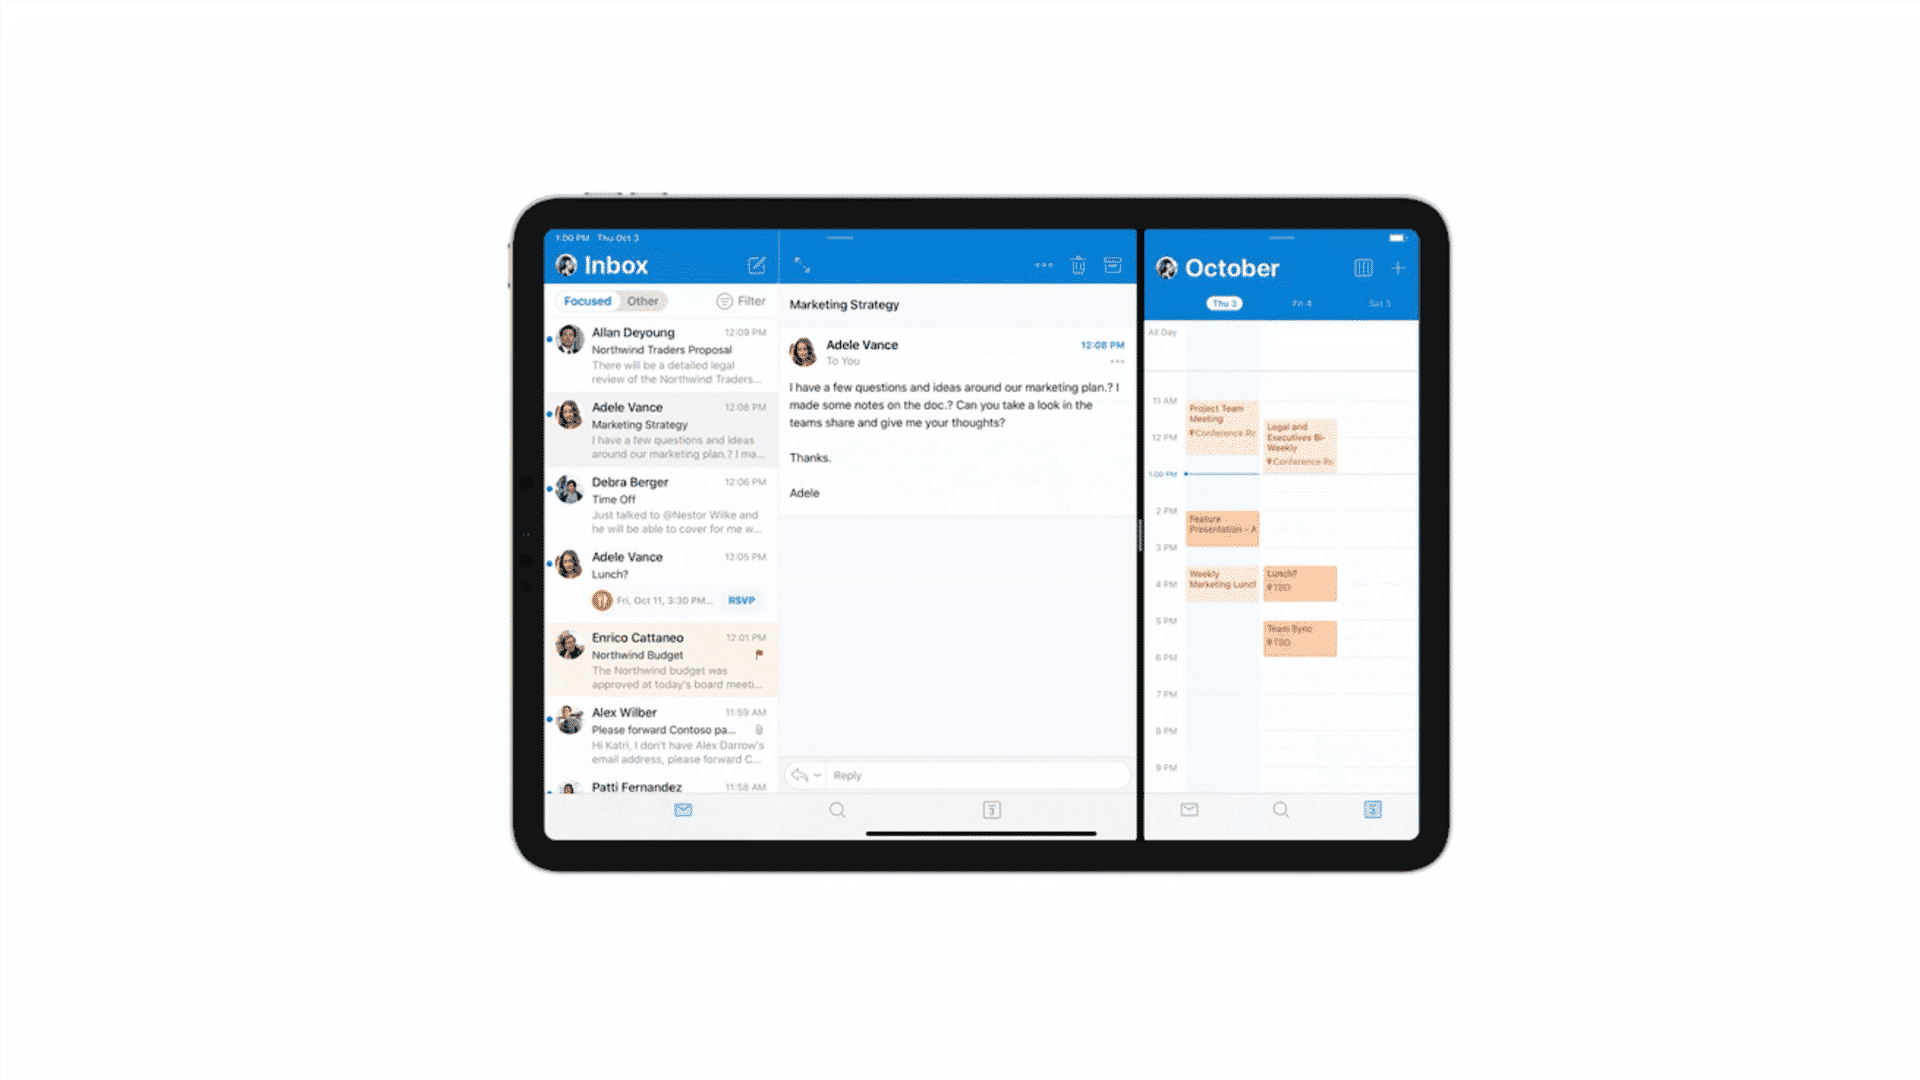 Outlook update on iPad now supports multitasking